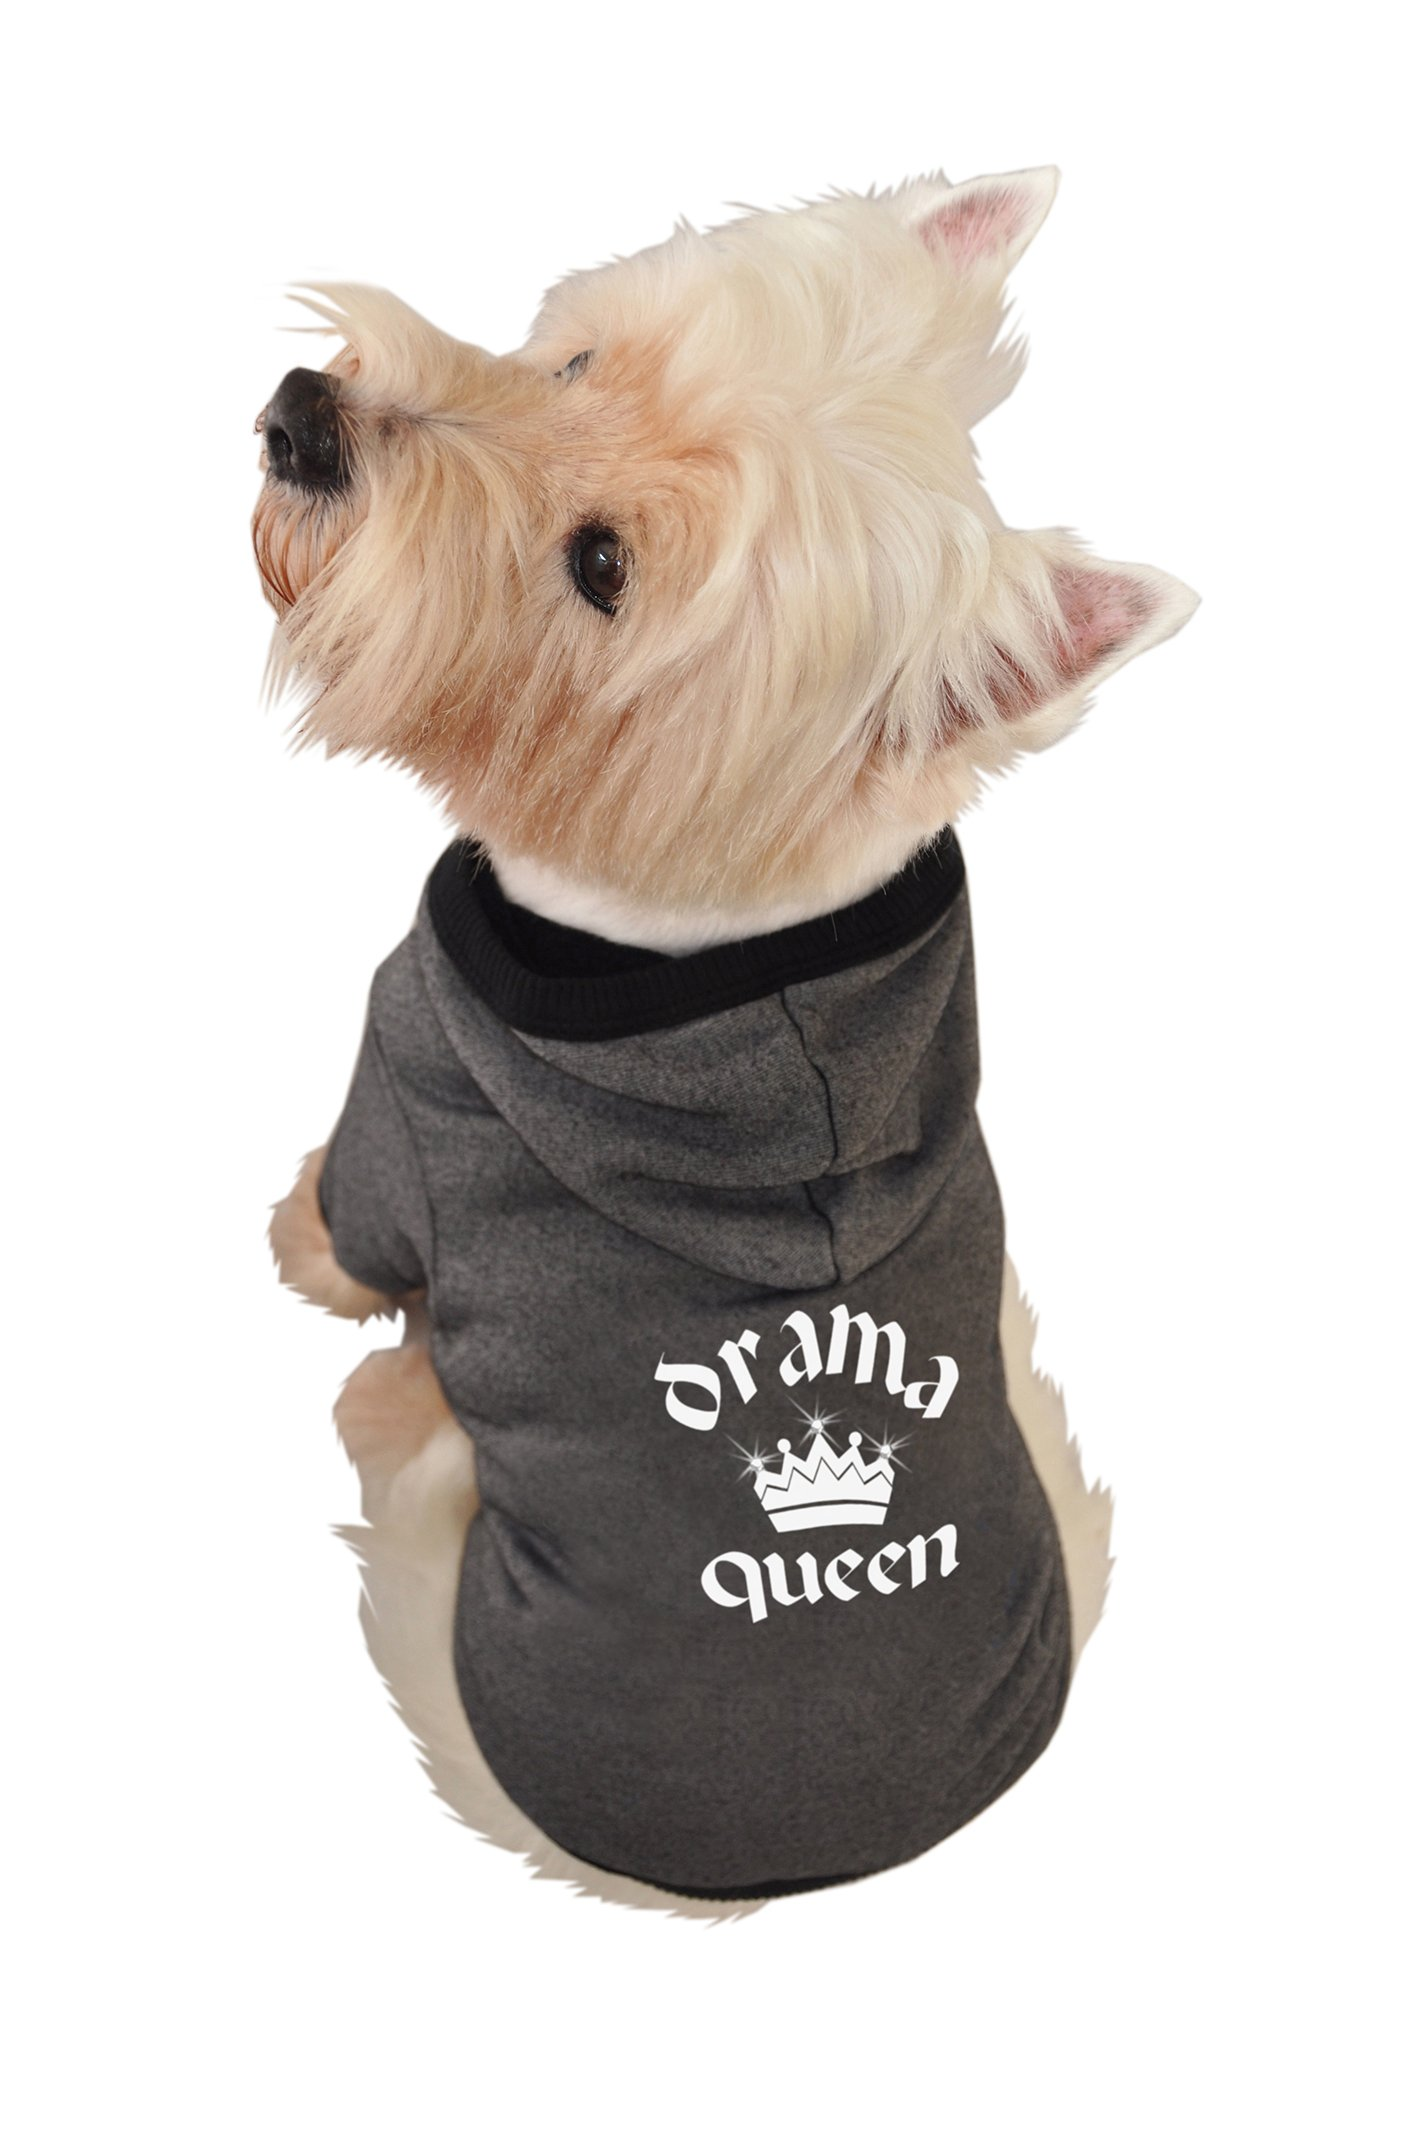 Ruff Ruff and Meow Dog Hoodie, Drama Queen, Black, Small by Ruff Ruff and Meow